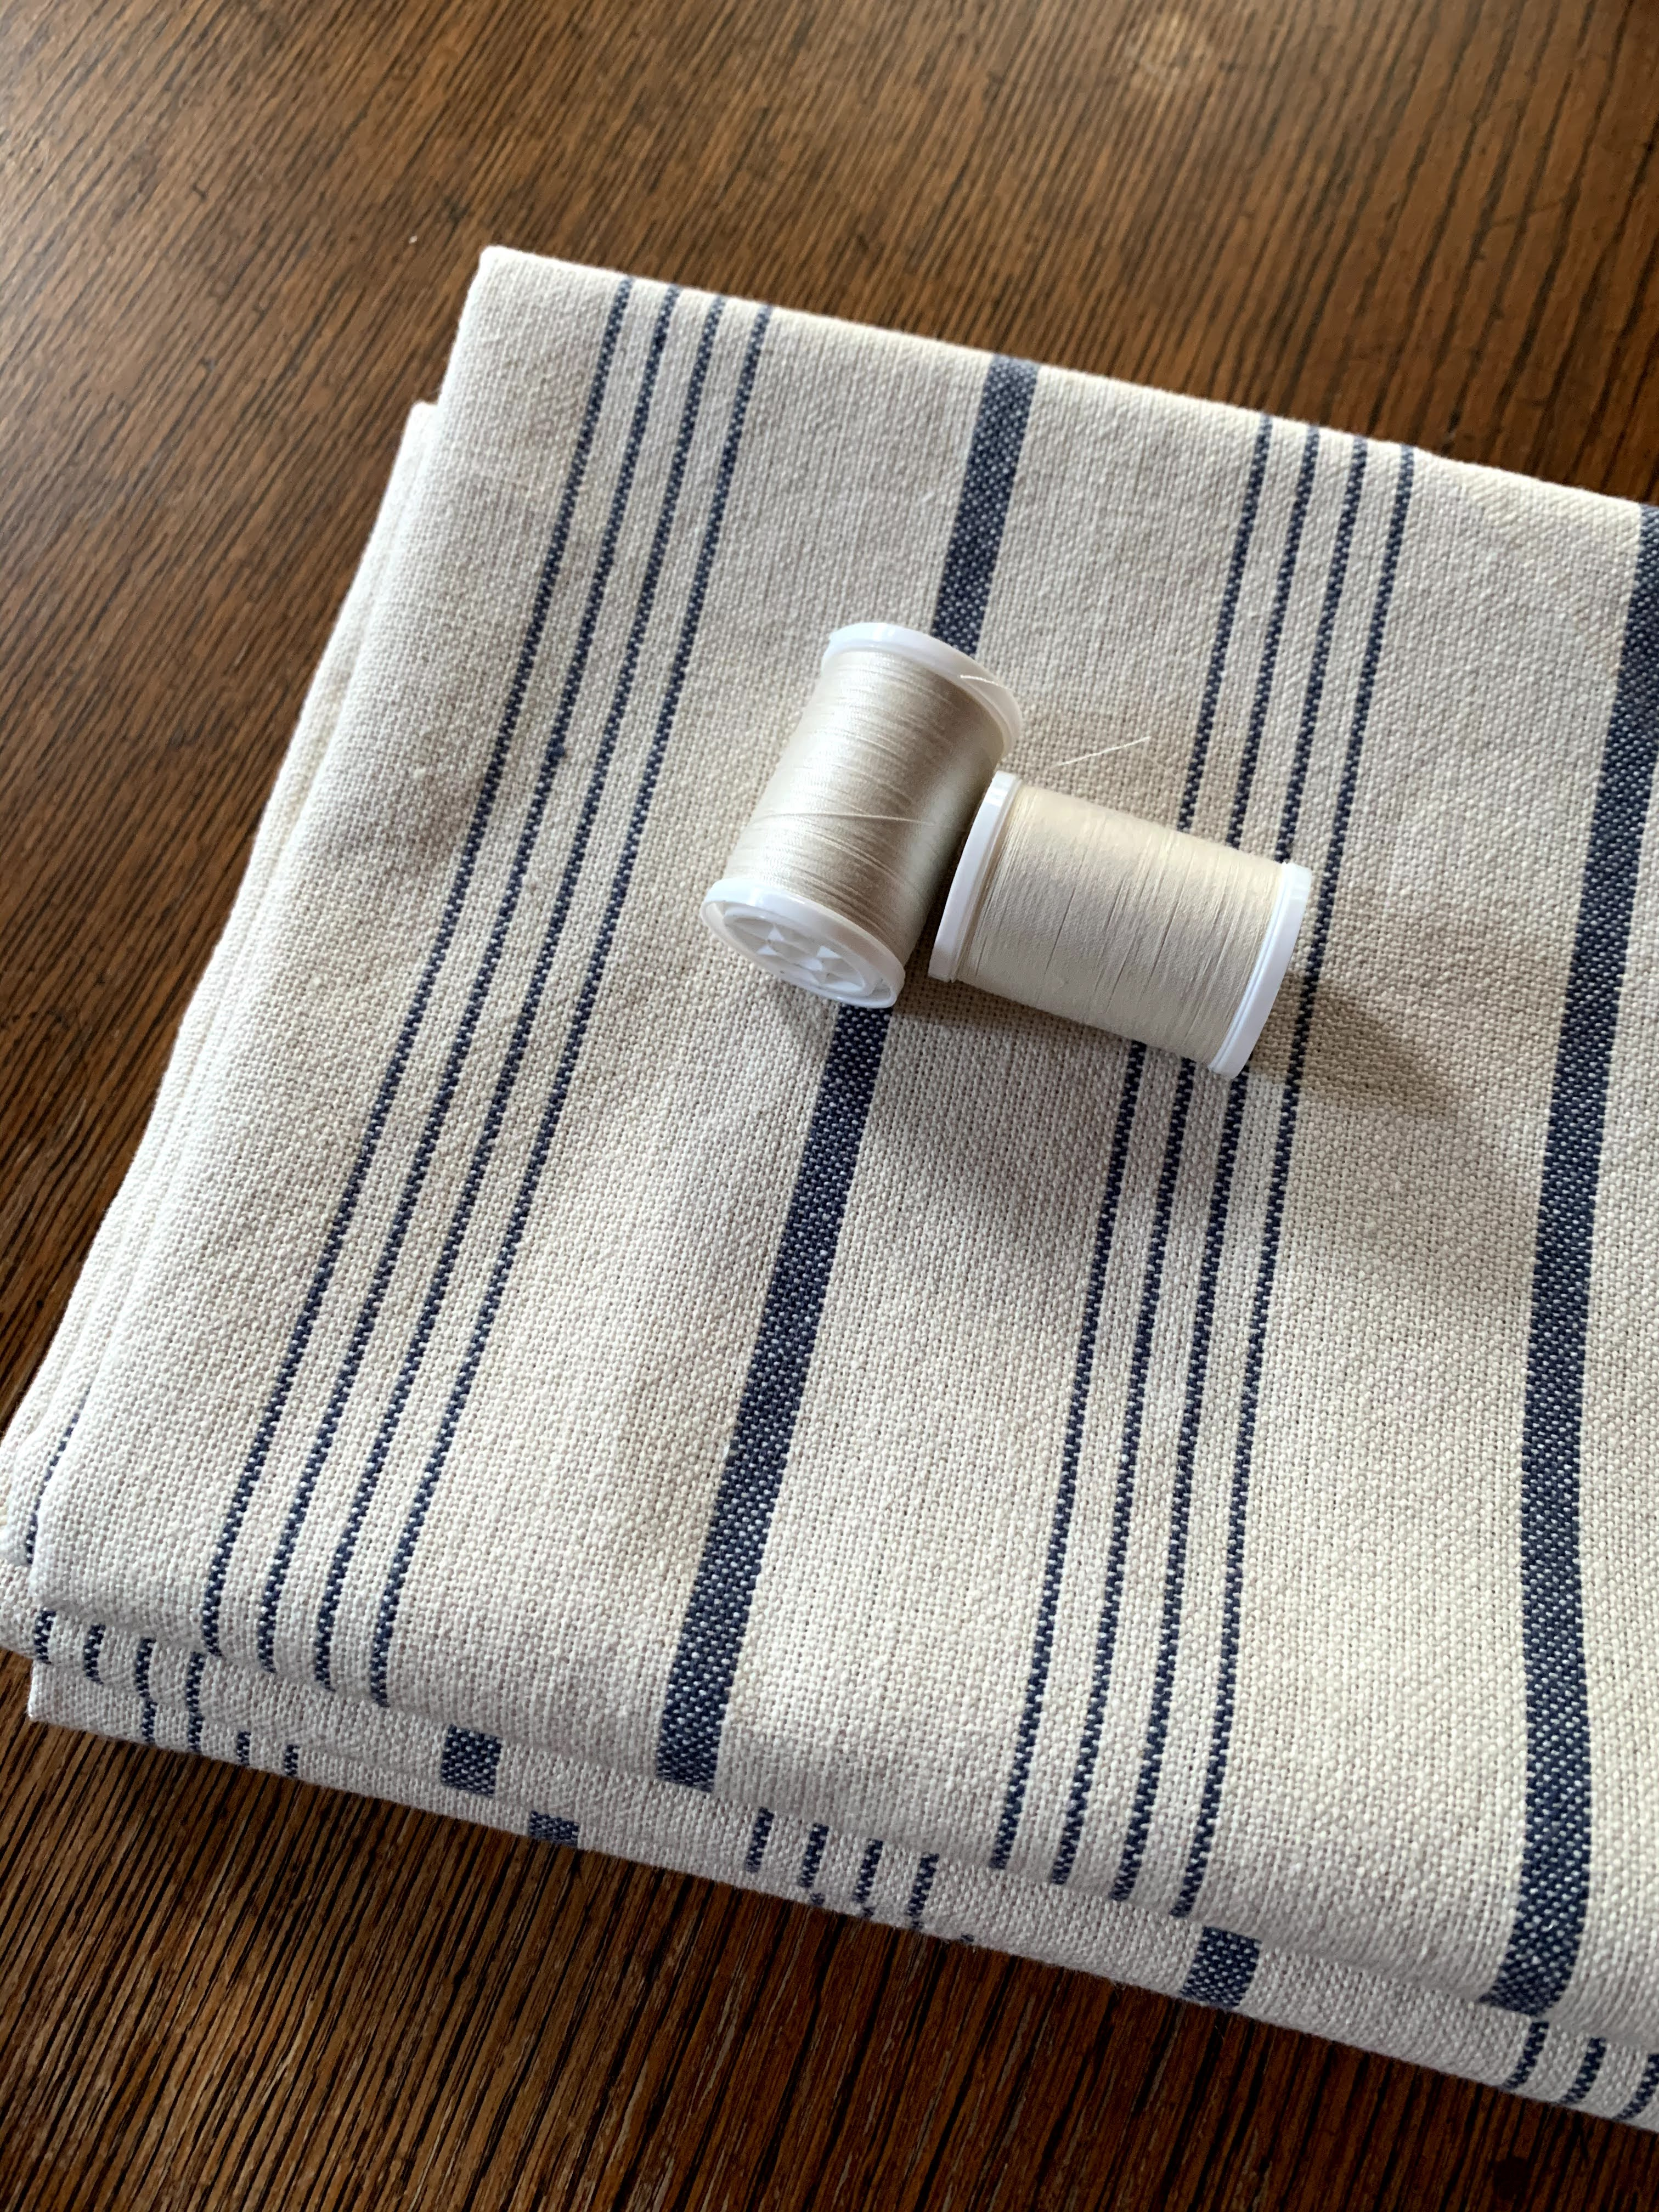 picture of striped linen fabric